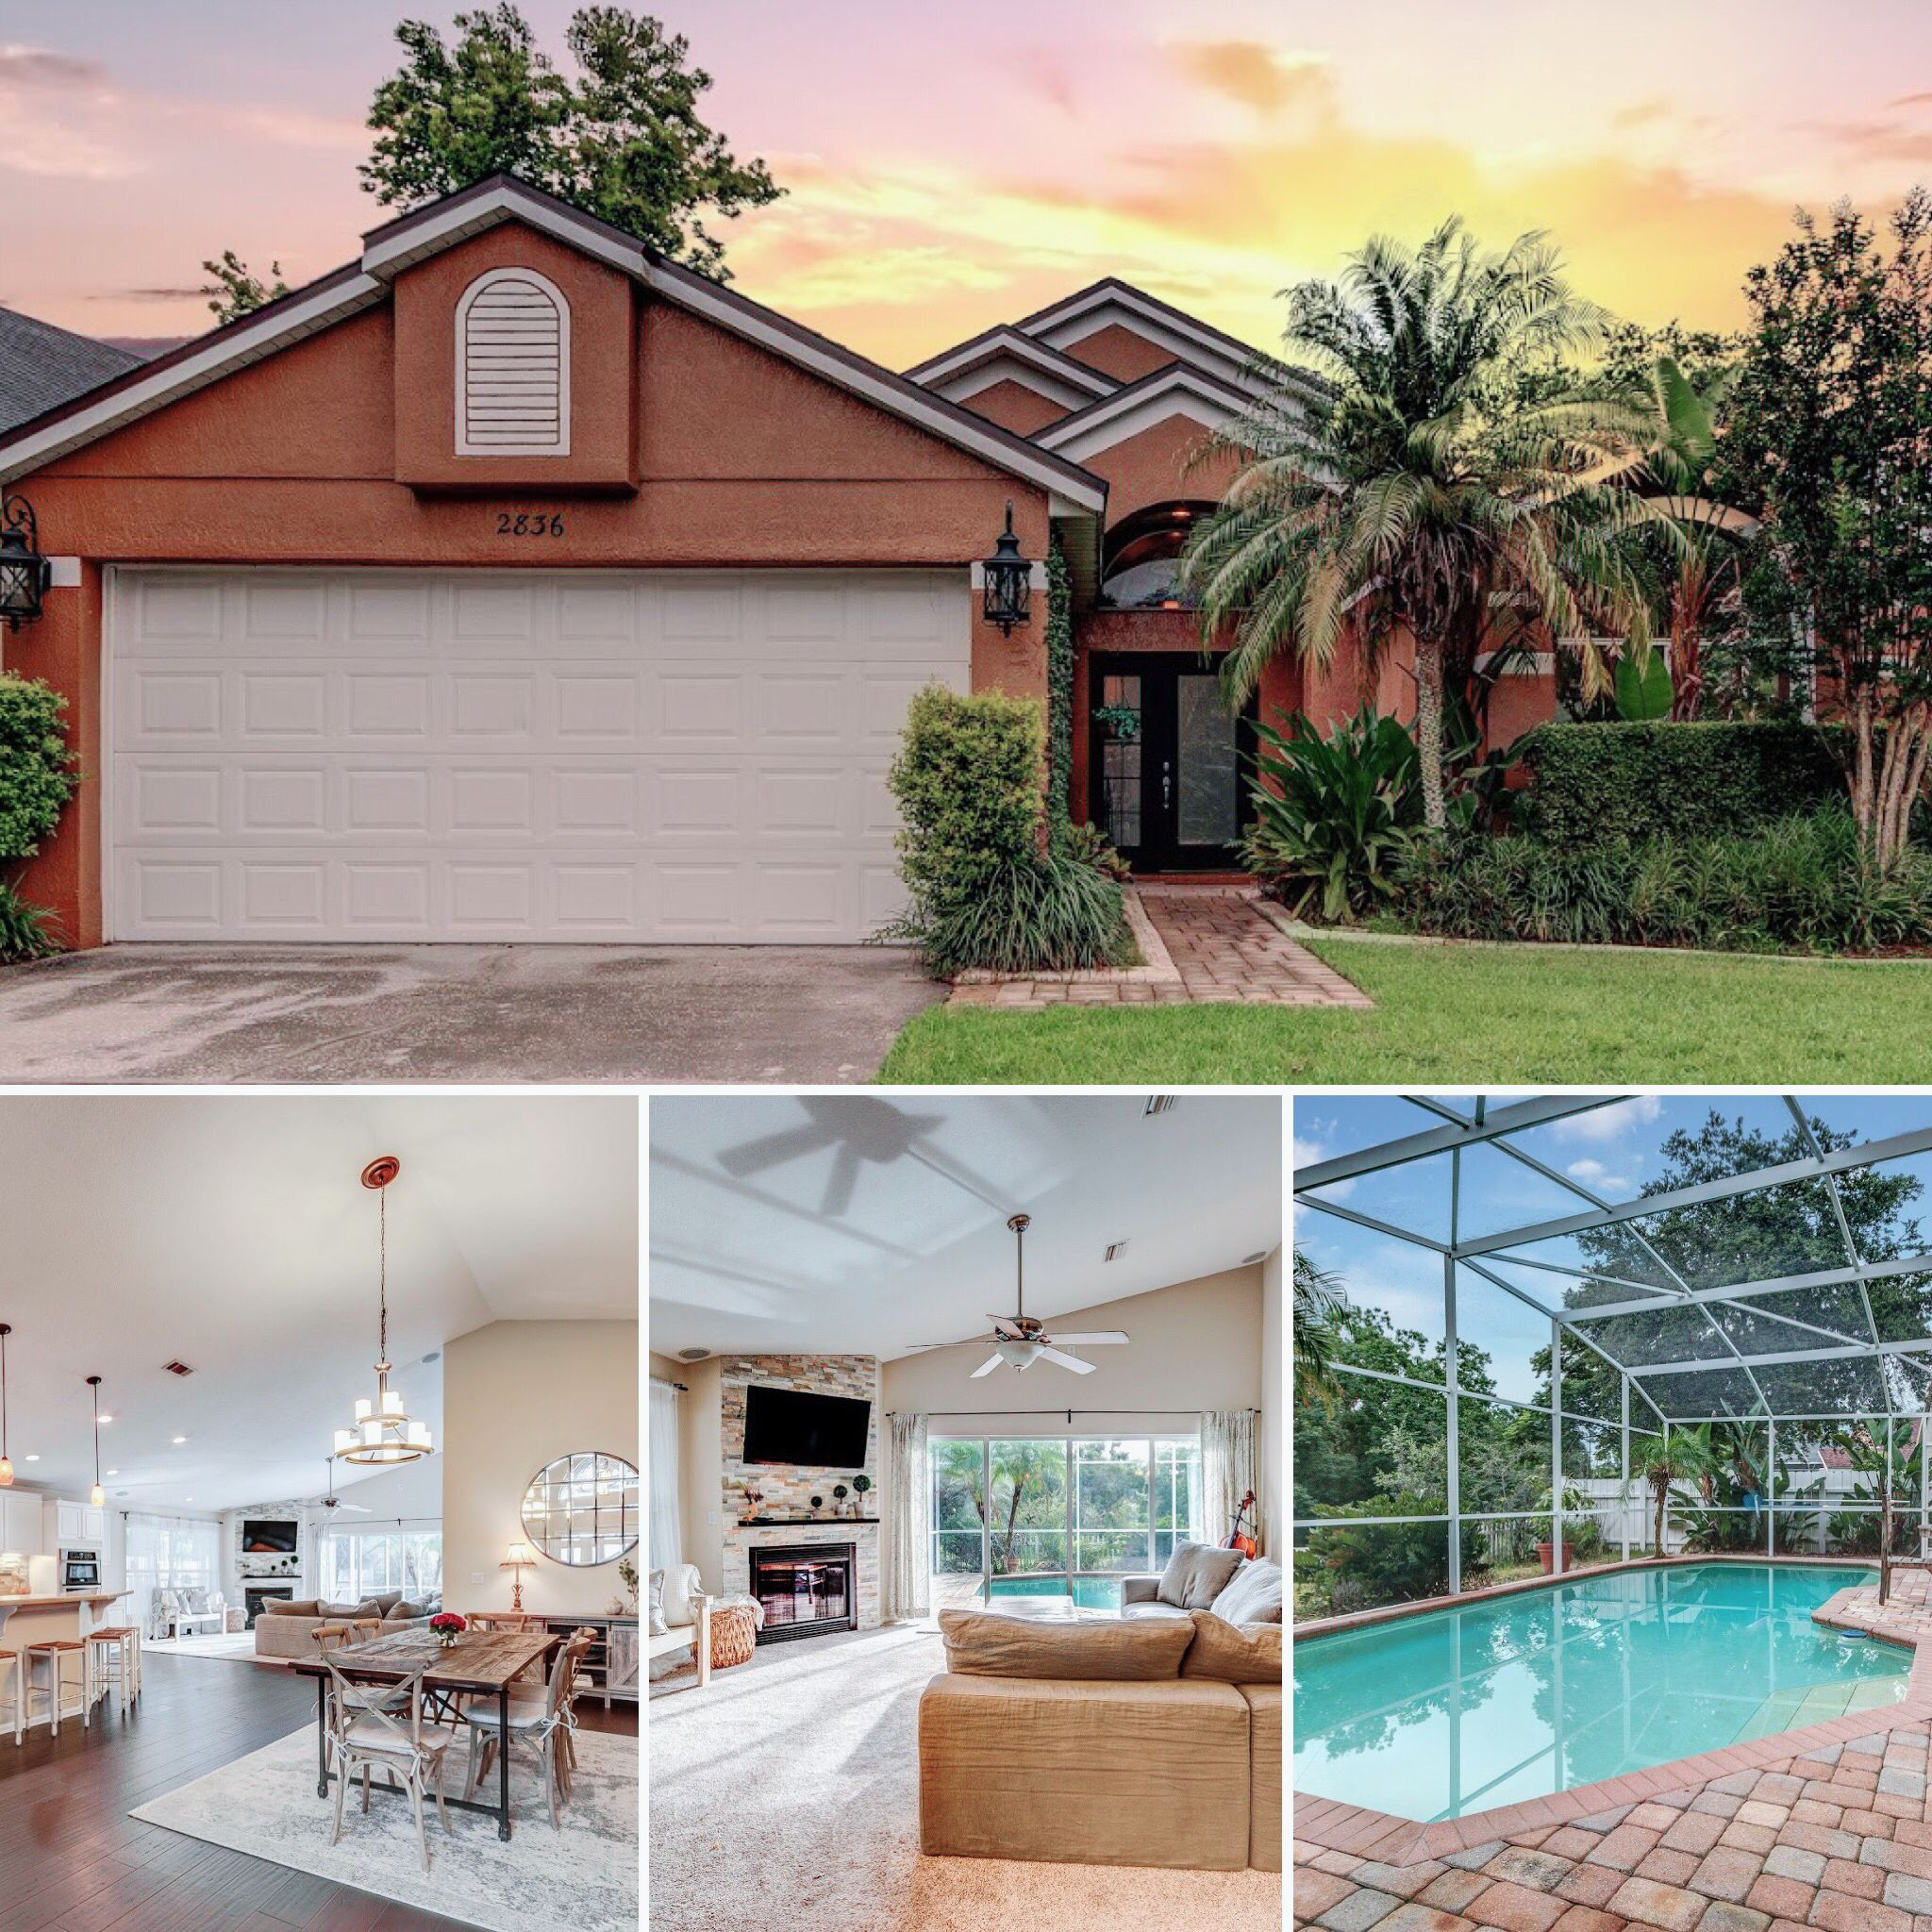 Awesome Orlando Fl Houses For Rent Apartments: Honored To Have Sold This Lovely 3 Bedroom & 2 Bathroom